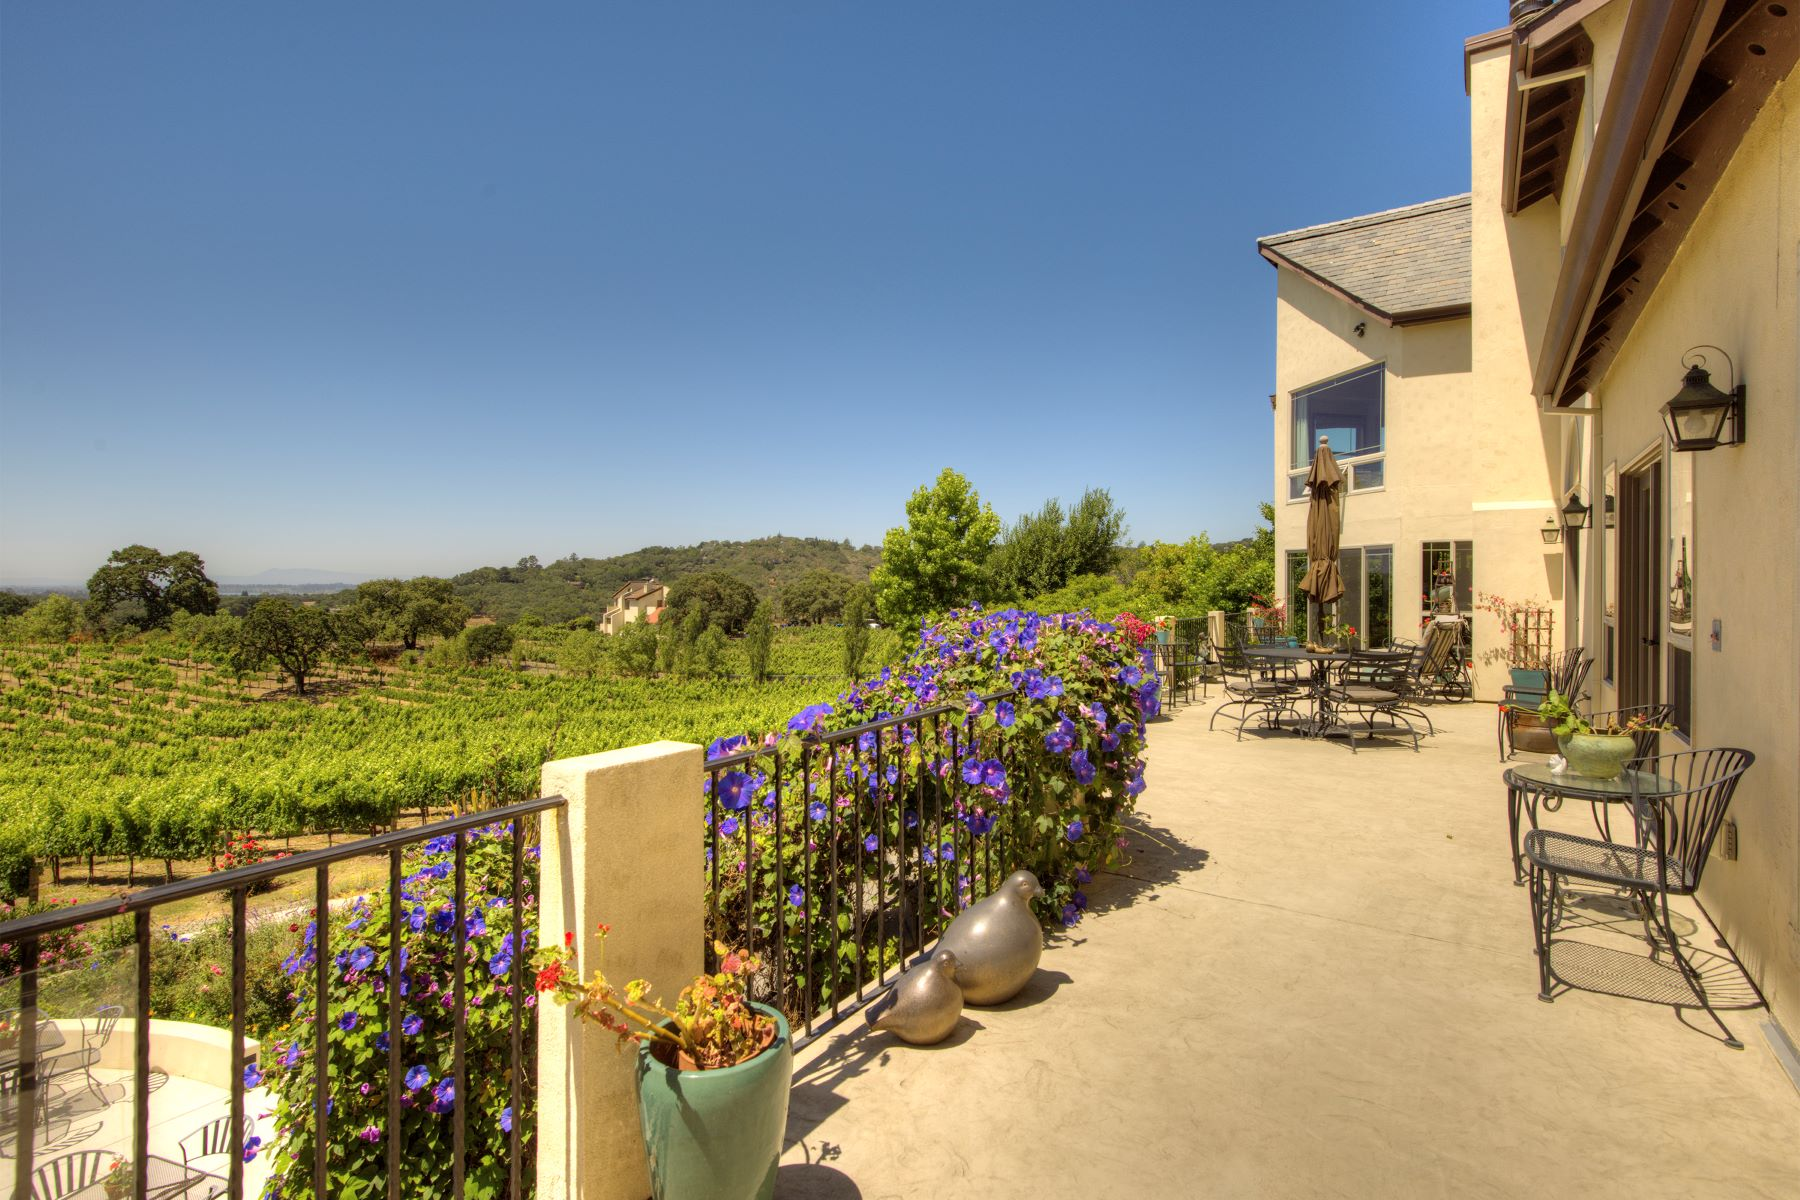 Single Family Home for Sale at Quail Knoll Vineyards 21 Palm Drive Napa, California 94558 United States